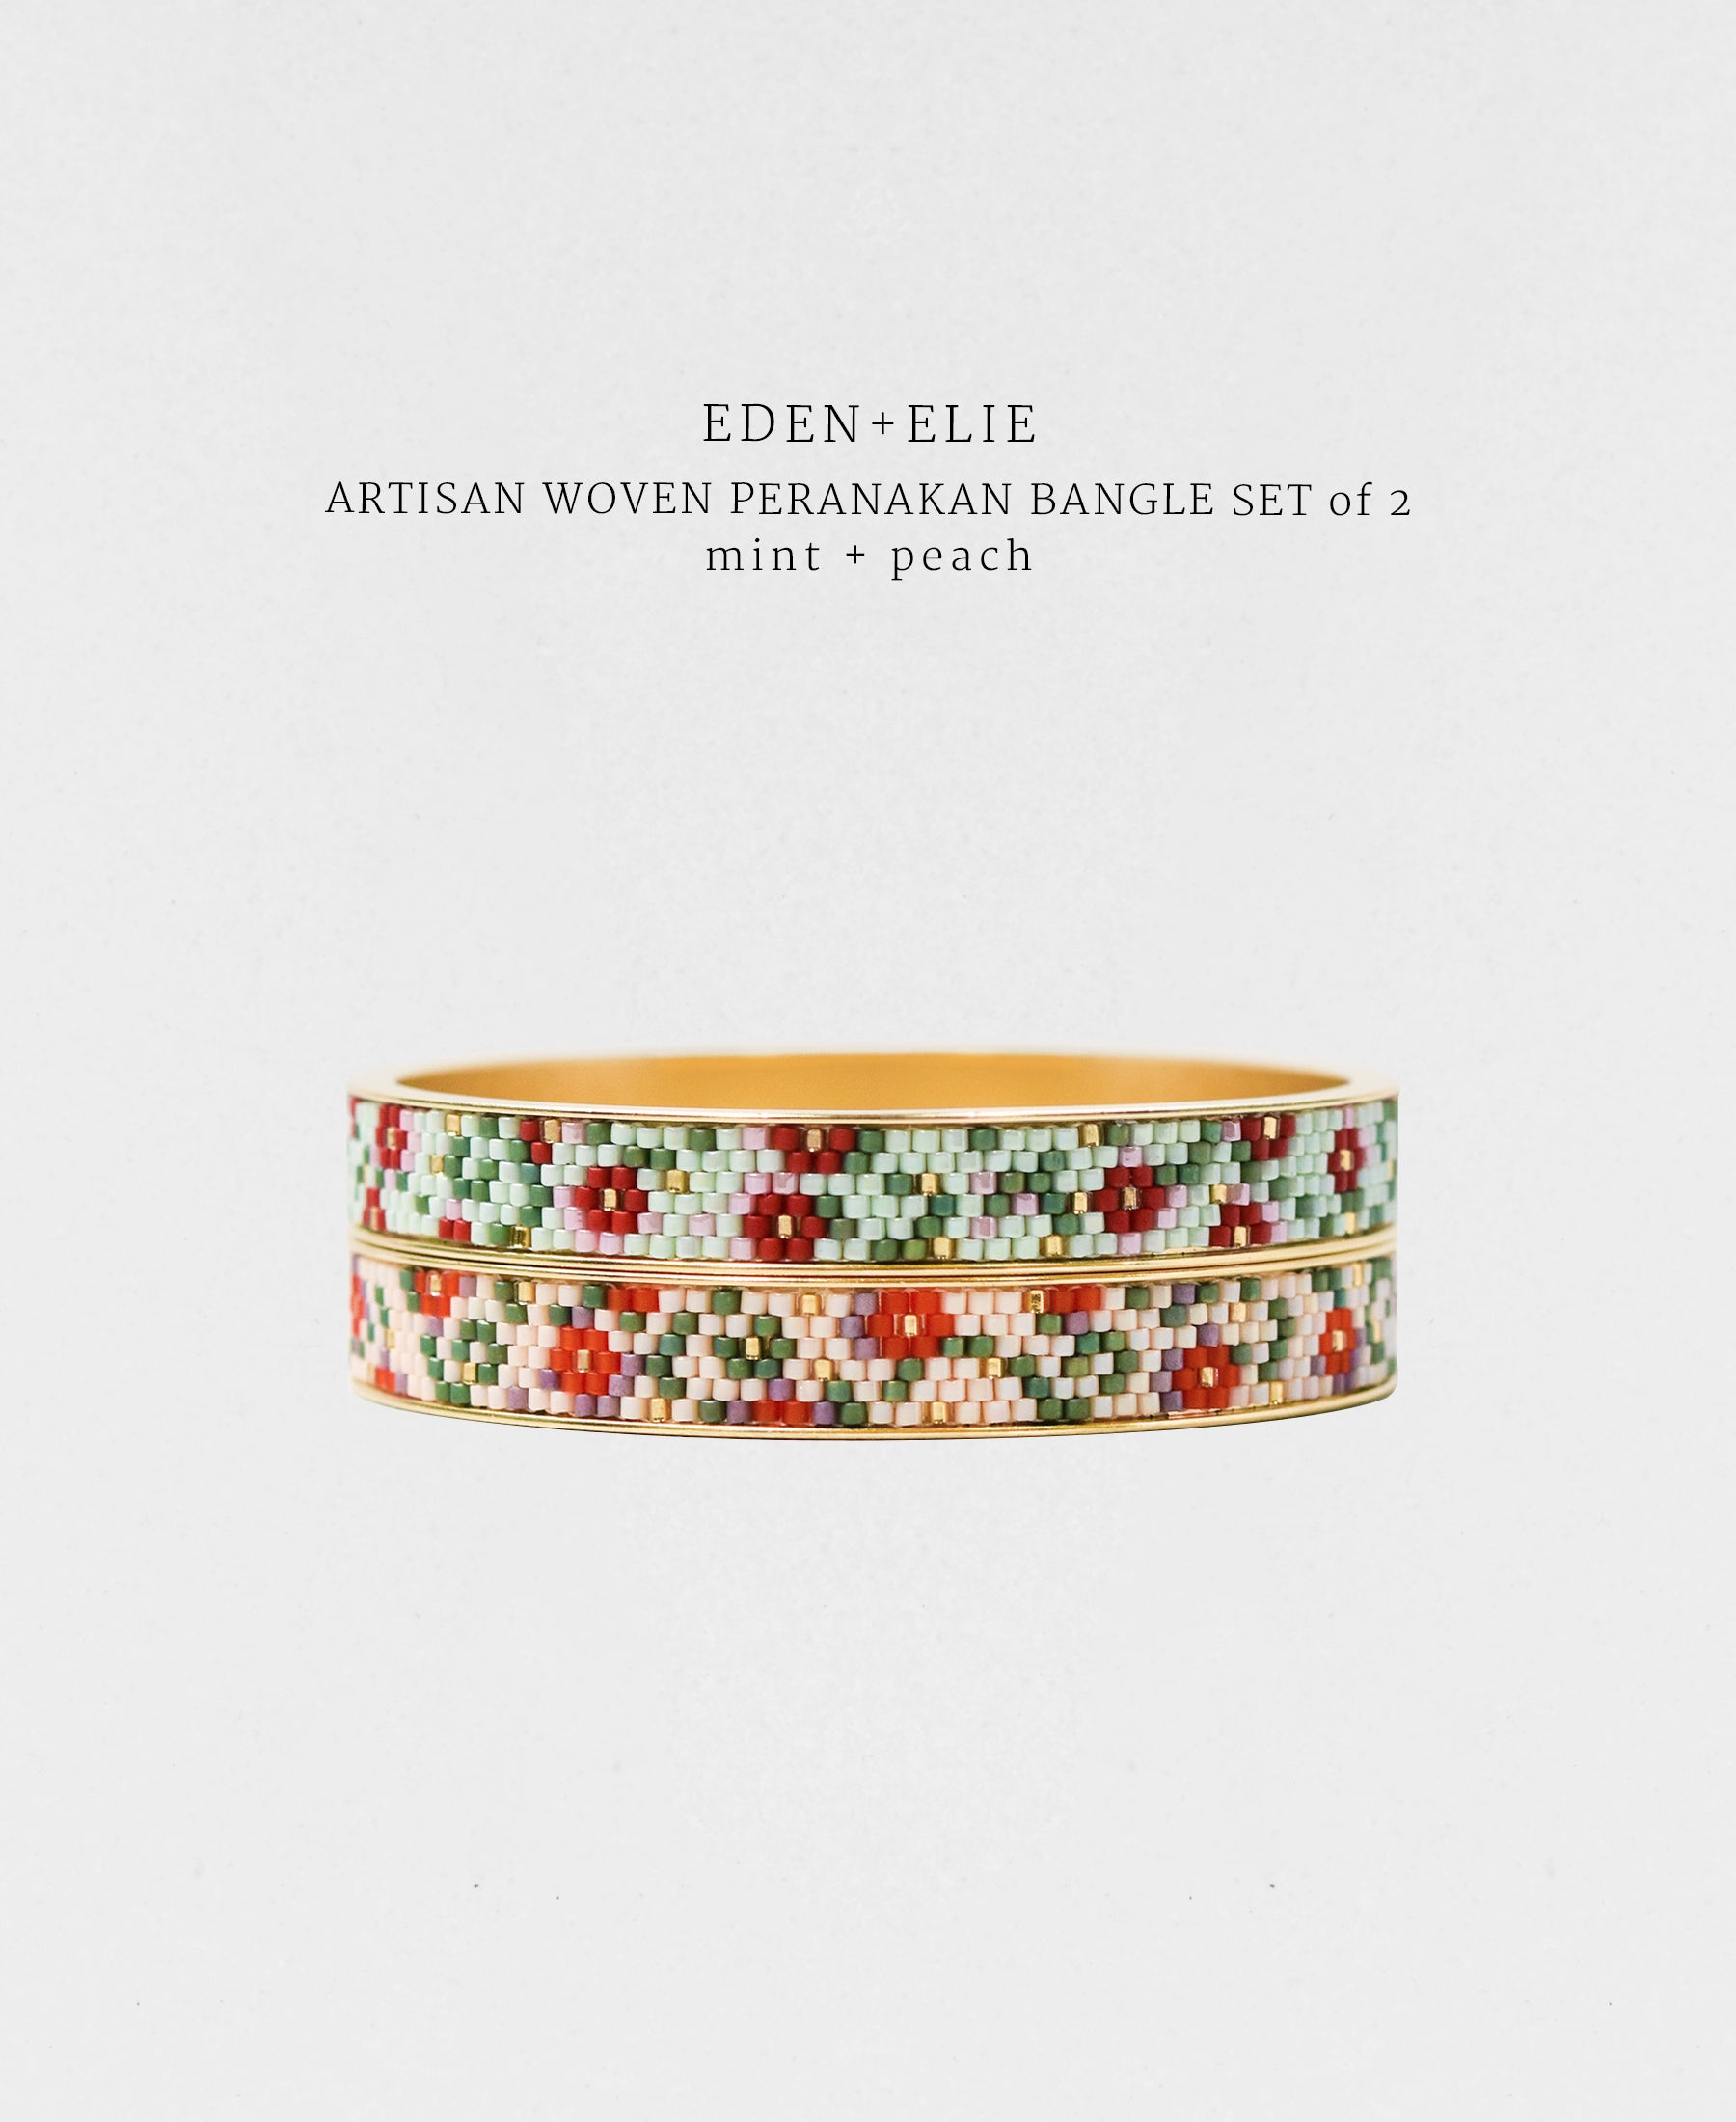 EDEN + ELIE Modern Peranakan gold narrow bangles set of 2 - mint + peach